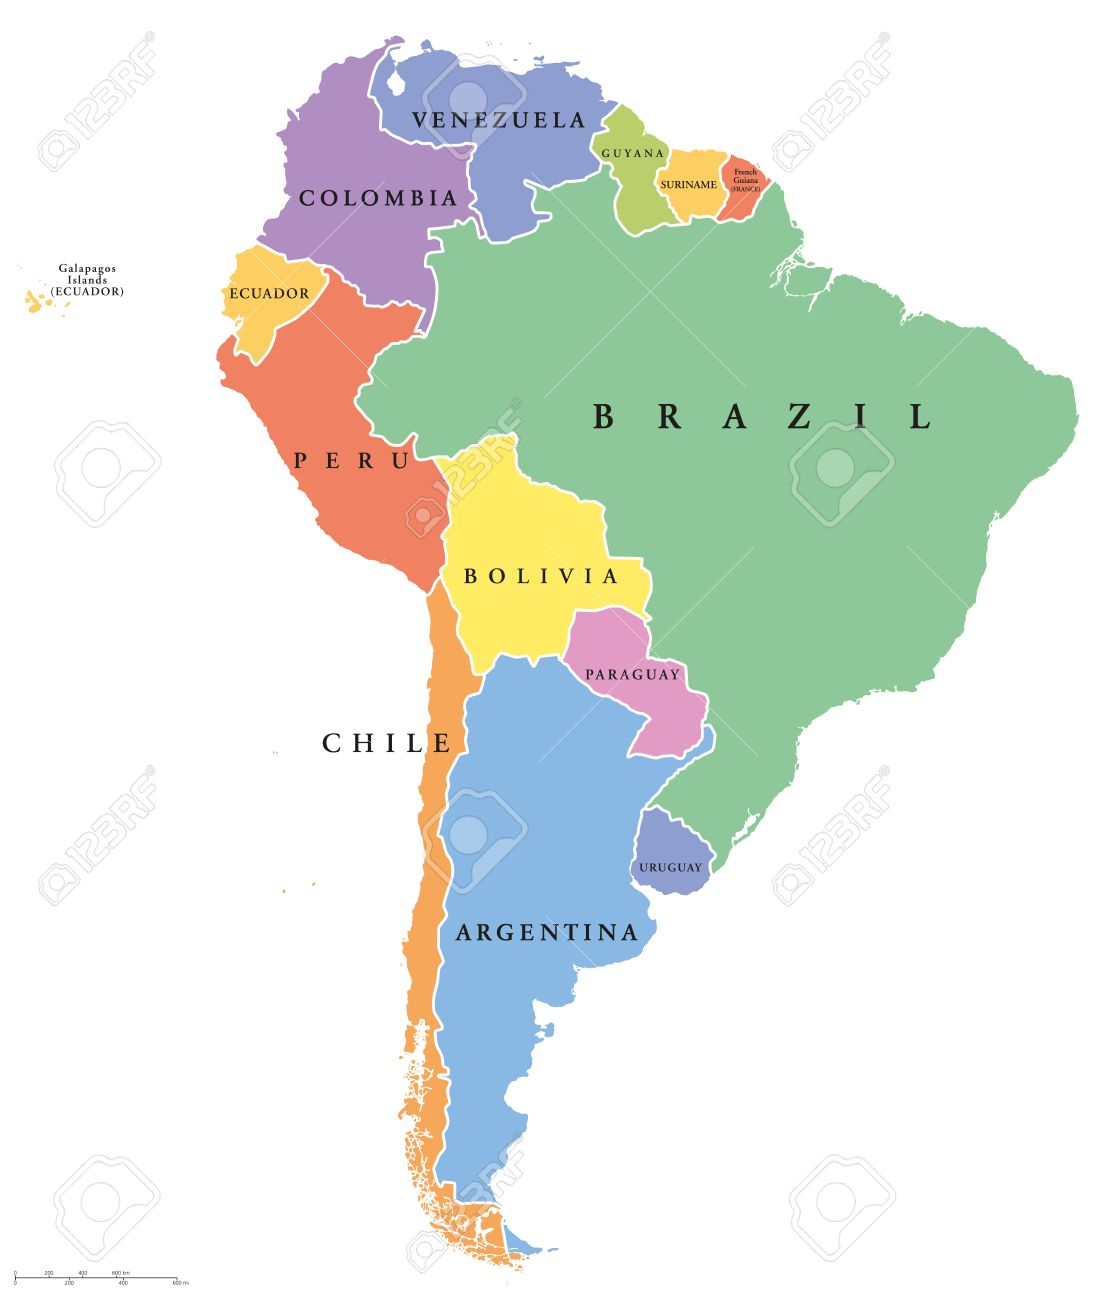 South america single states political map all countries in south america single states political map all countries in different colors with national borders gumiabroncs Choice Image